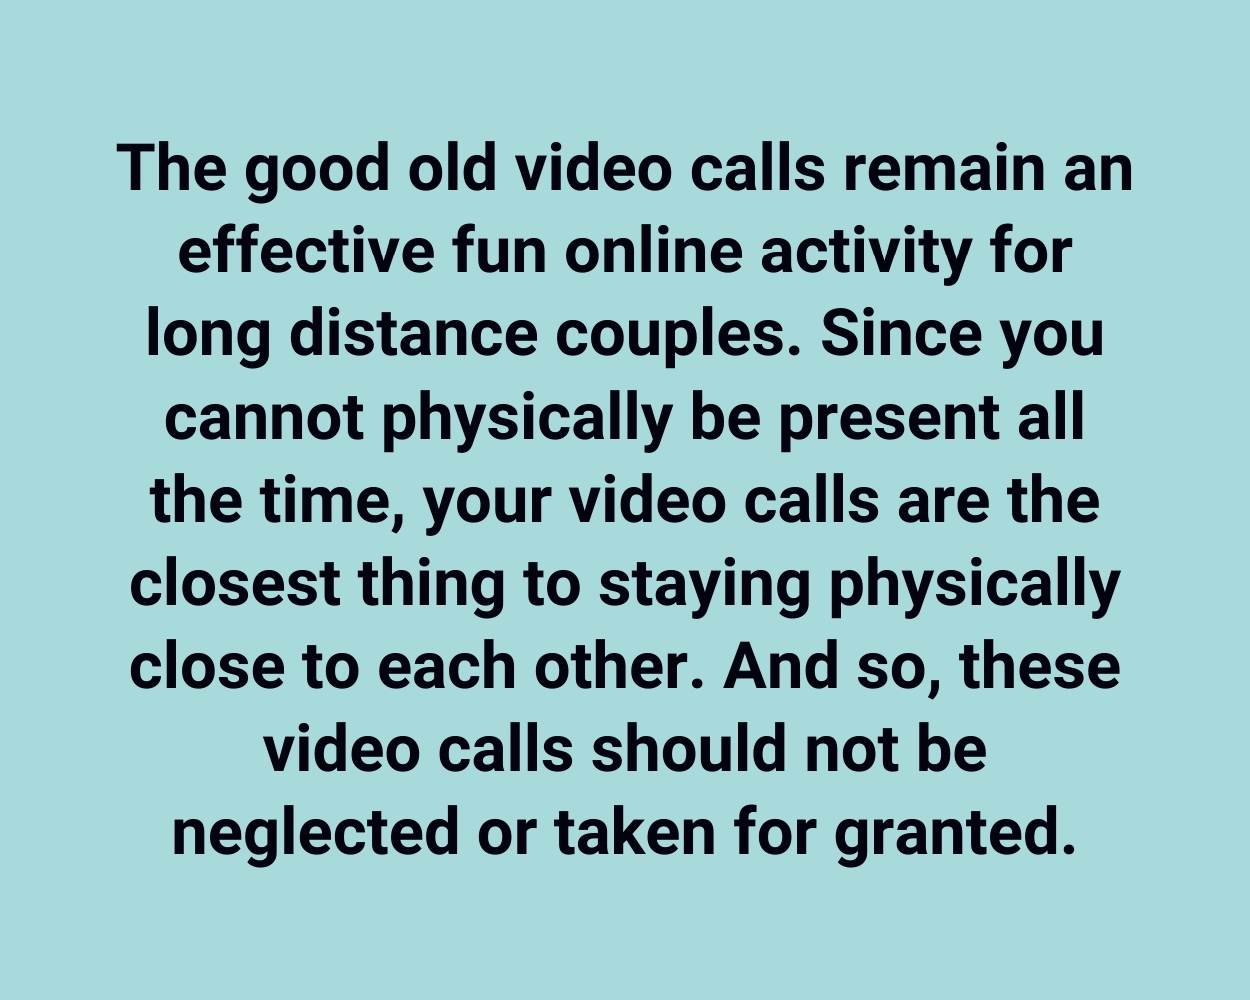 The good old video calls remain an effective fun online activity for long distance couples. Since you cannot physically be present all the time, your video calls are the closest thing to staying physically close to each other. And so, these video calls should not be neglected or taken for granted.